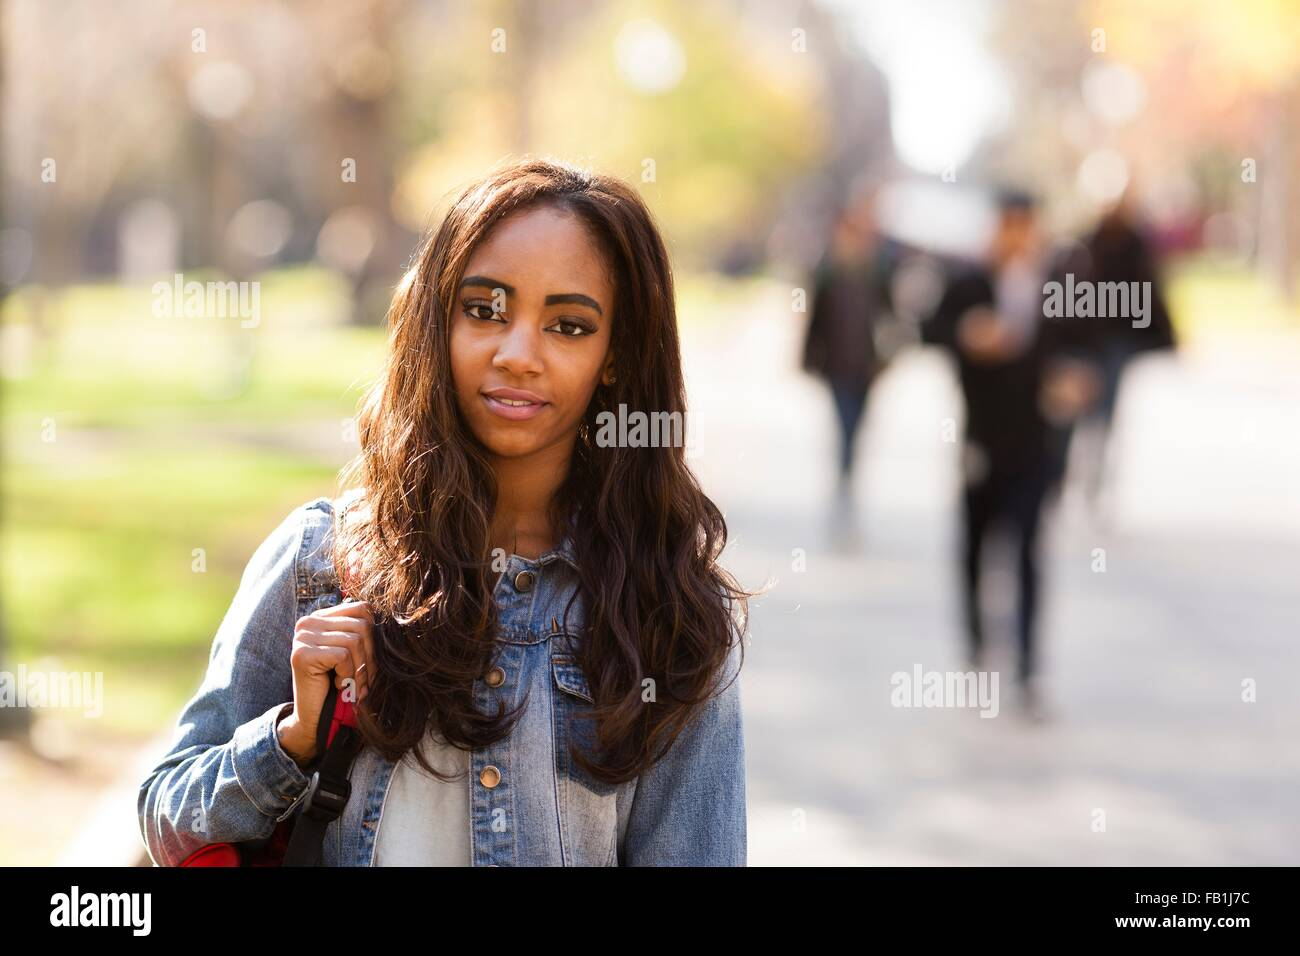 d5aa3c1d5e61 Long Hair Stock Photos   Long Hair Stock Images - Alamy